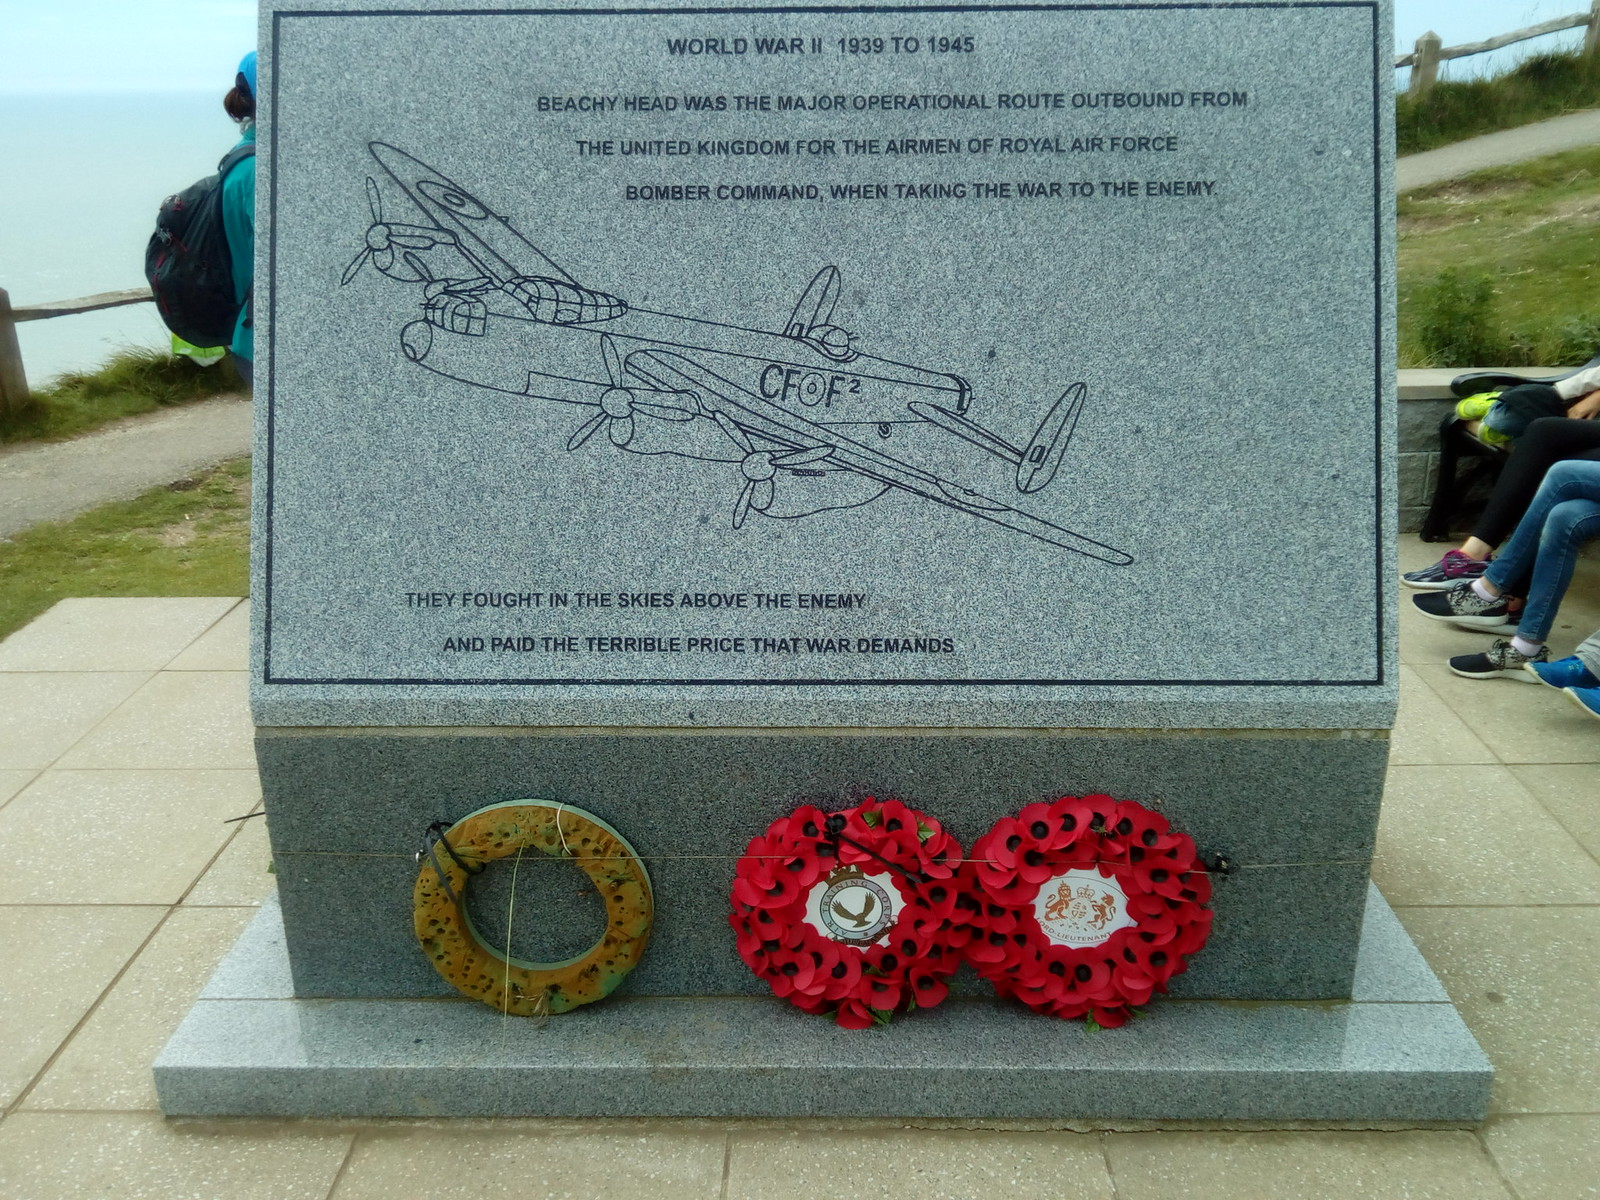 Beachy Head Epitaph for WW2 Airmen